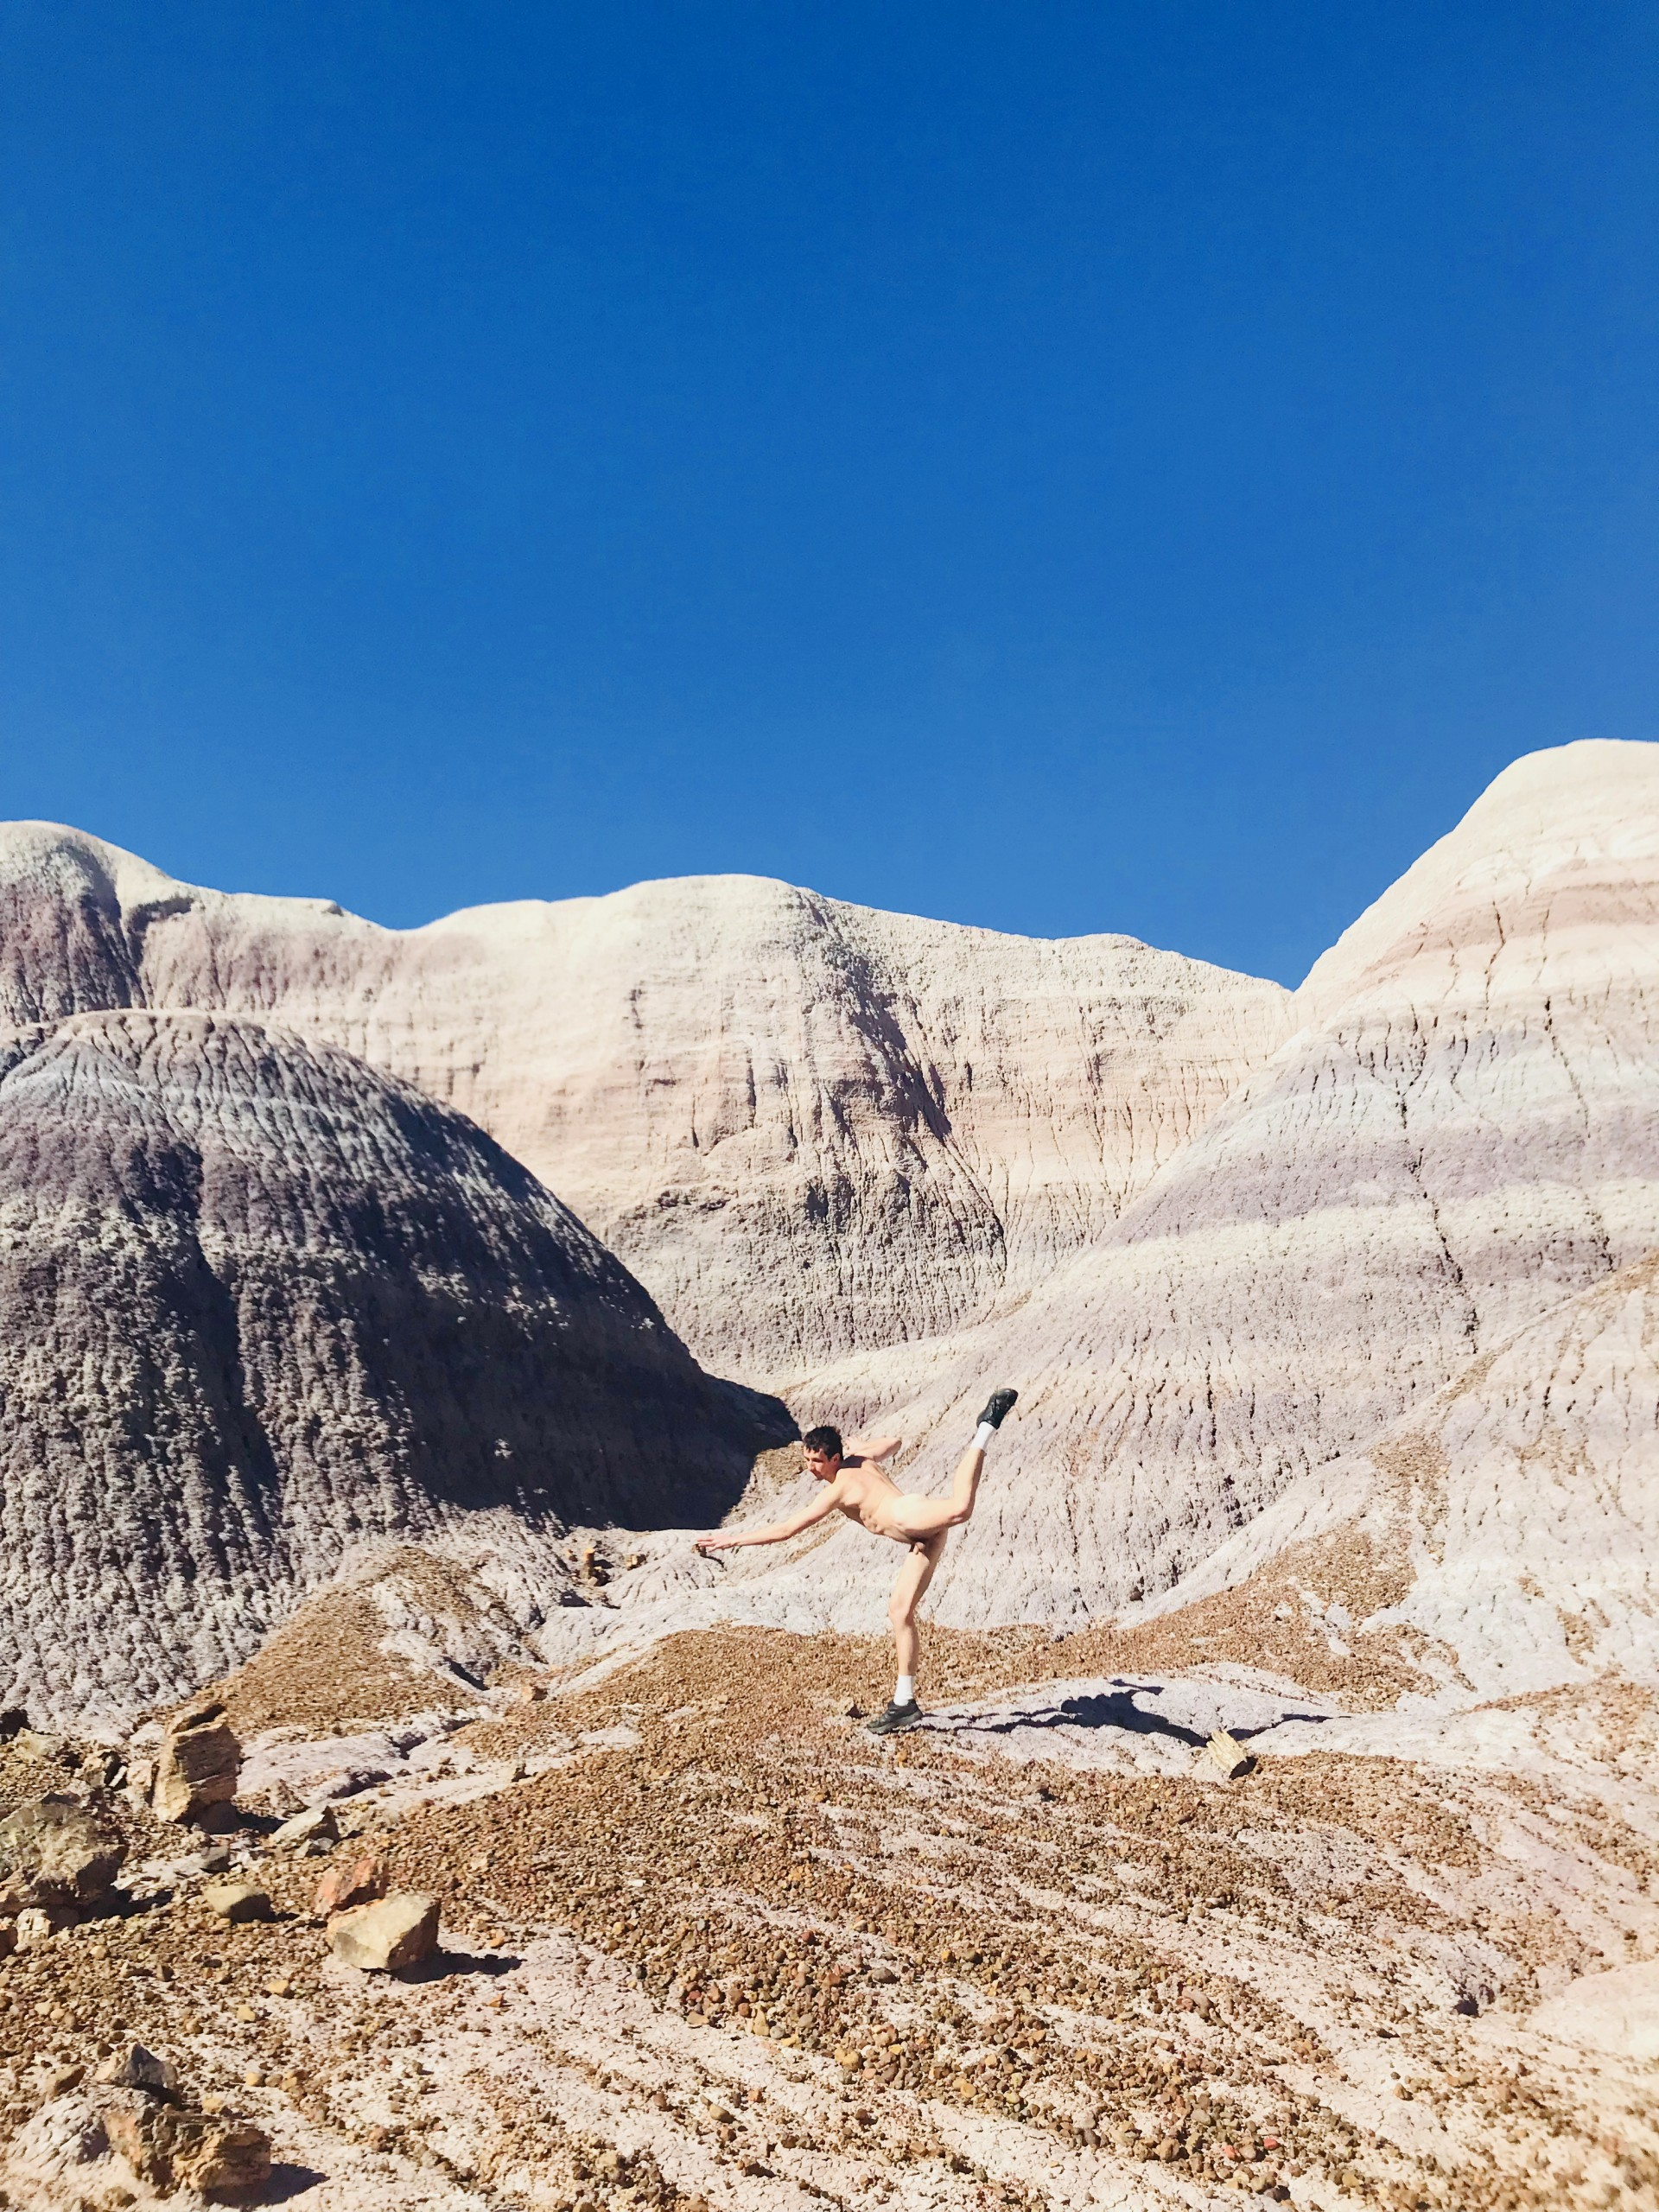 Photograph of Blue Mesa in Petrified Forrest in Arizona. Nude male model in center of image mid leap with leg in air.